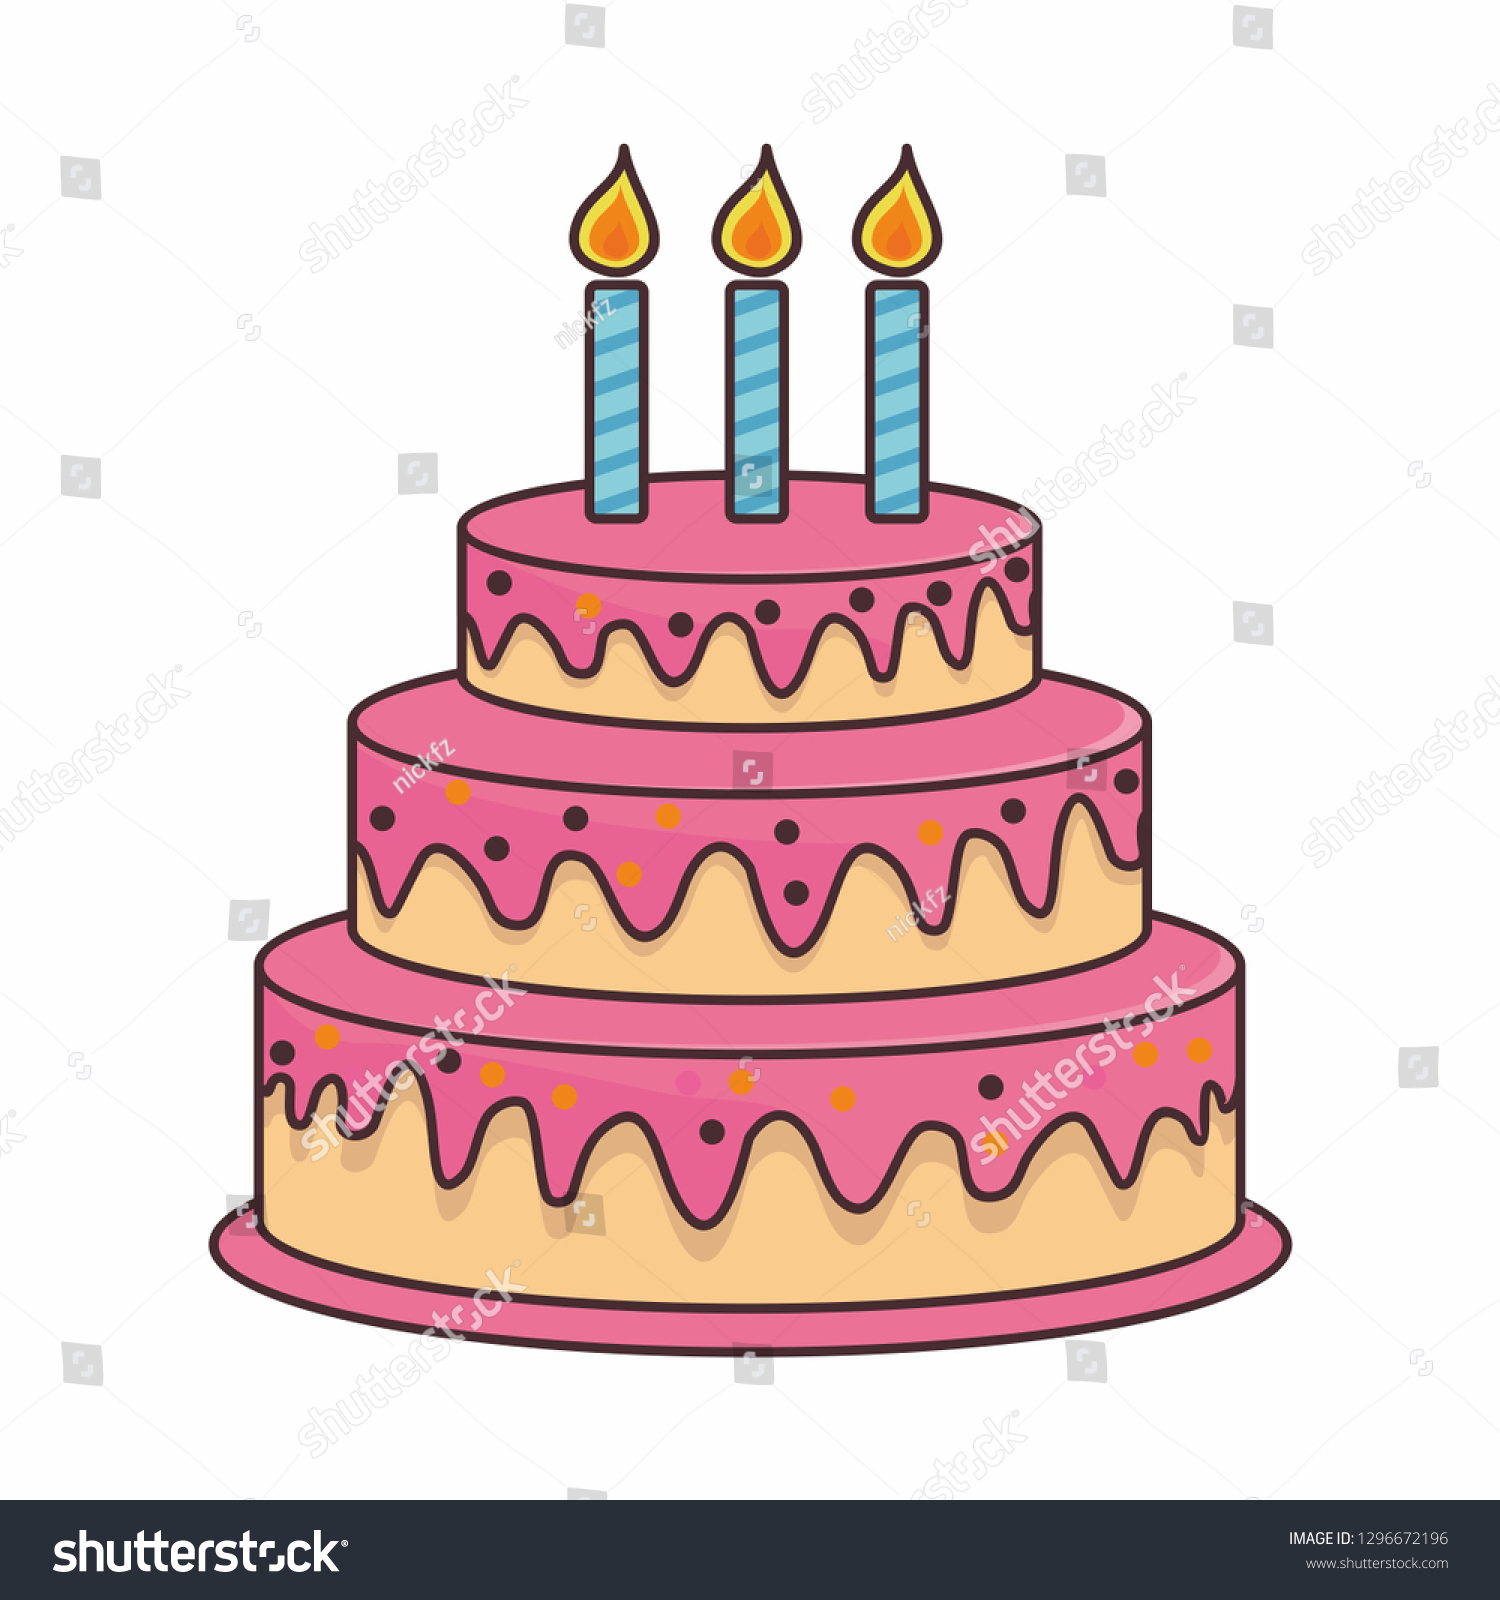 Birthday Cake Cartoon Illustration Stock Vector Royalty Free 1296672196